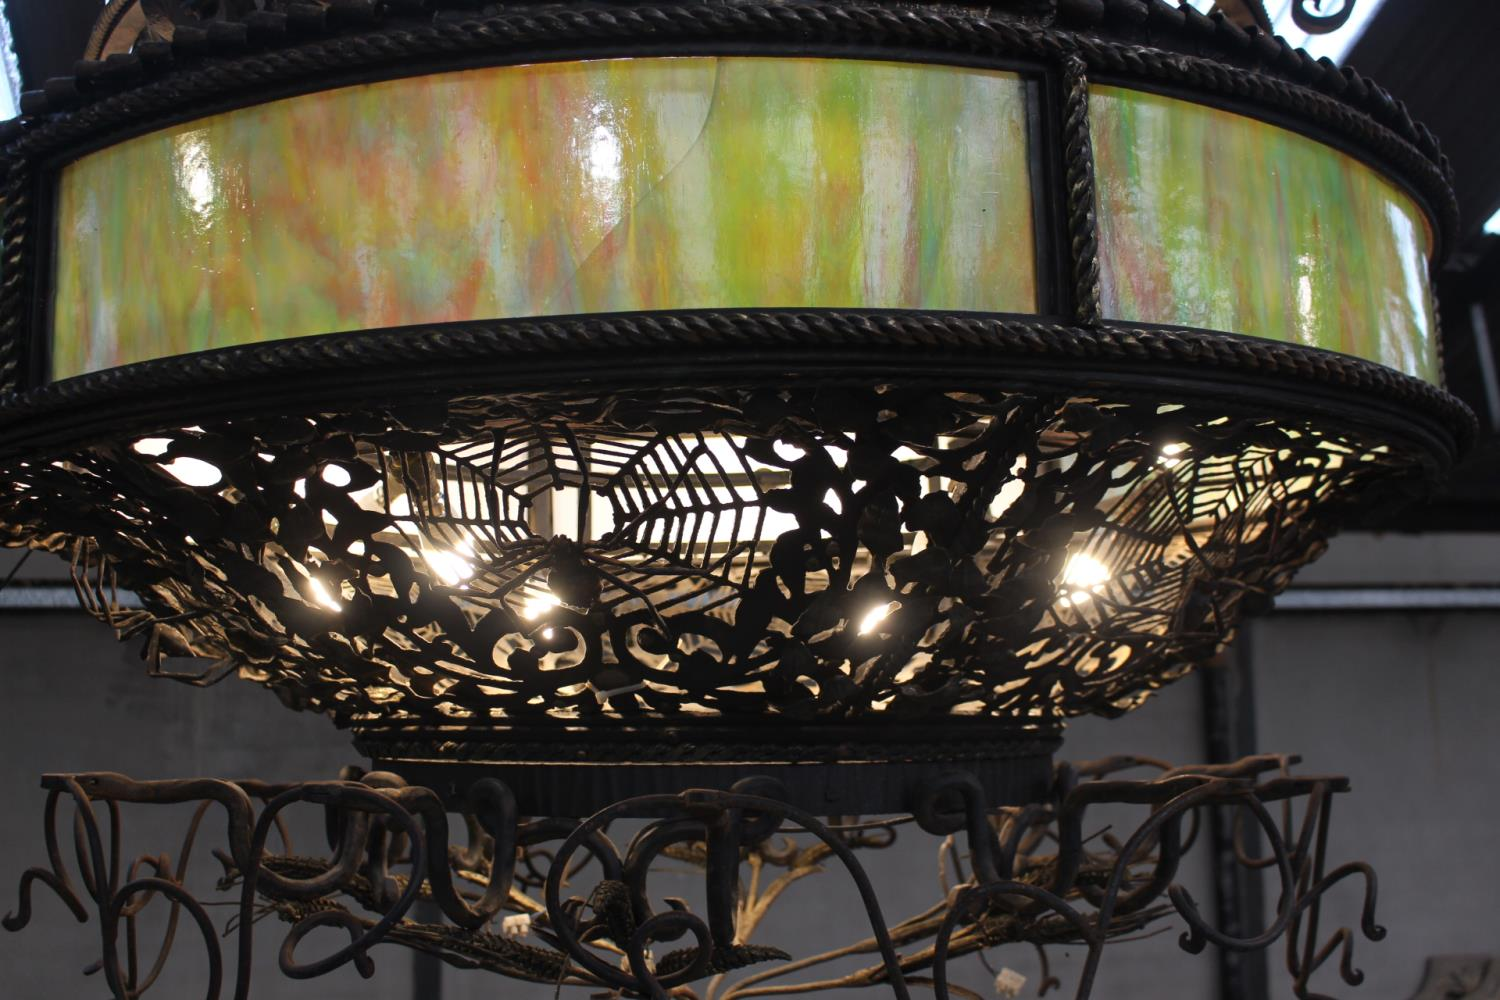 Wrought iron two tier ceiling light - Image 2 of 3